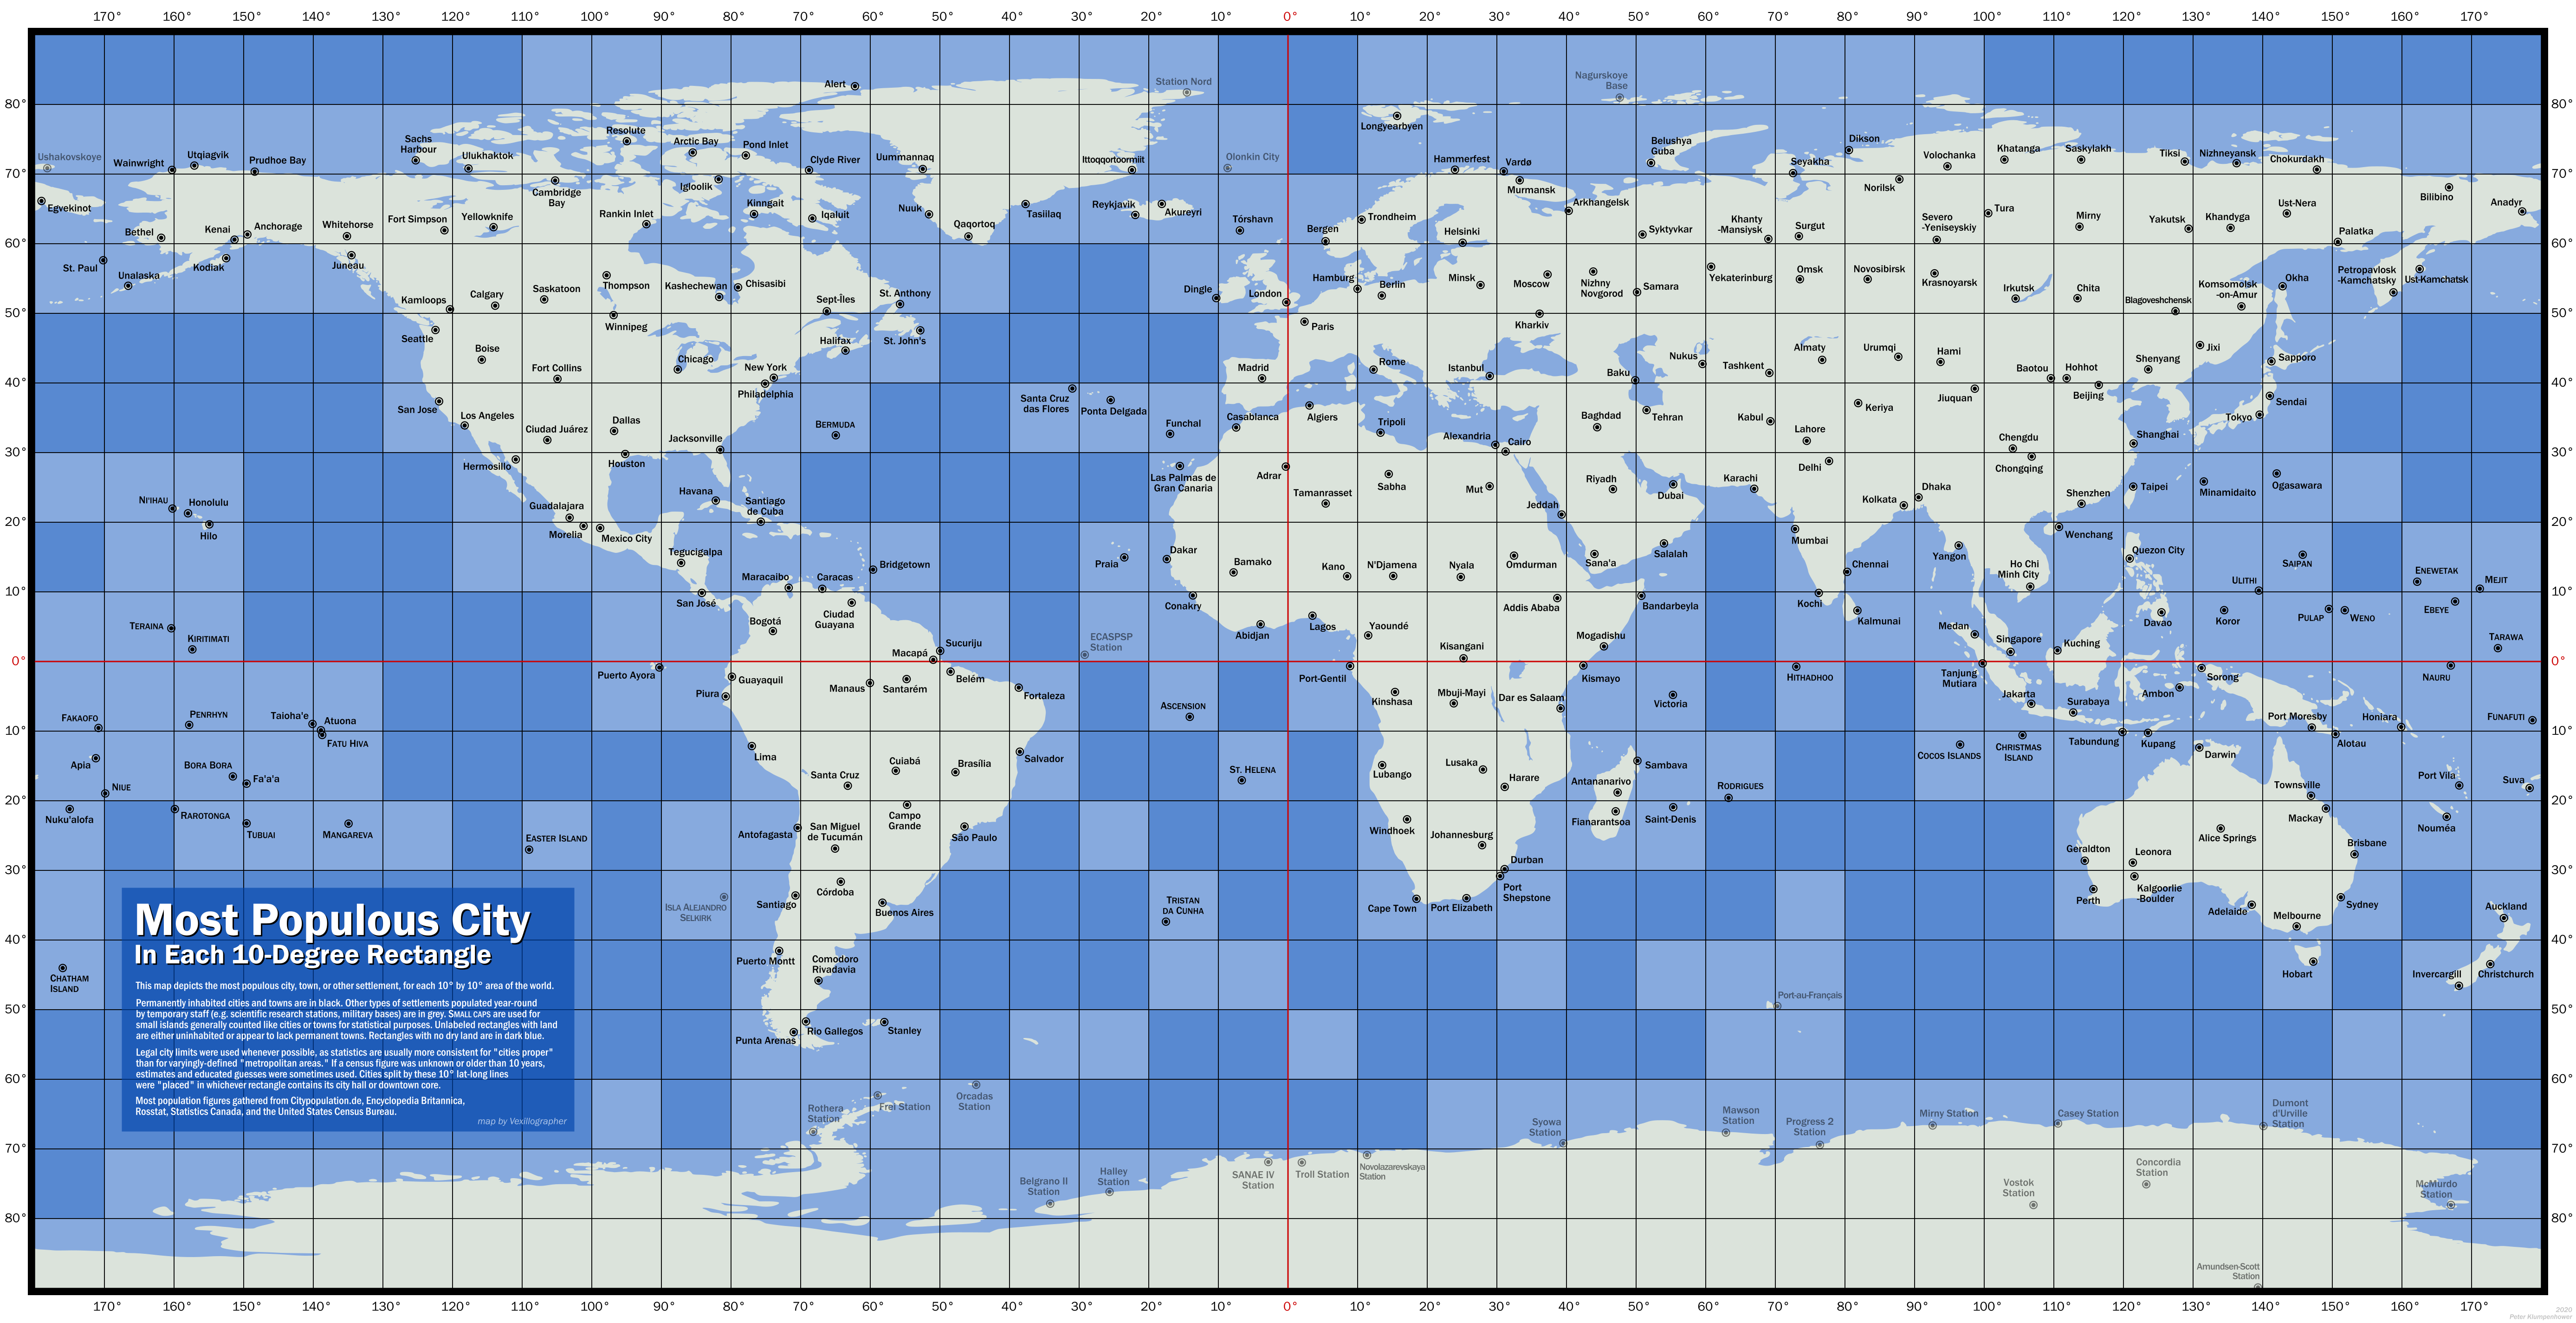 Equirectangular map of the world, divided into squares, each 10 degrees in latitude and longitude.  Most of the squares have a settlement marked, usually a large city such as Moscow, London, or New York.  But many of the settlements are much smaller, especially in Micronesia (Kiritimati, Bora Bora, Fa'a'a) and the polar regions (Nizhneyansk, Utquiagvik, Akureyri).